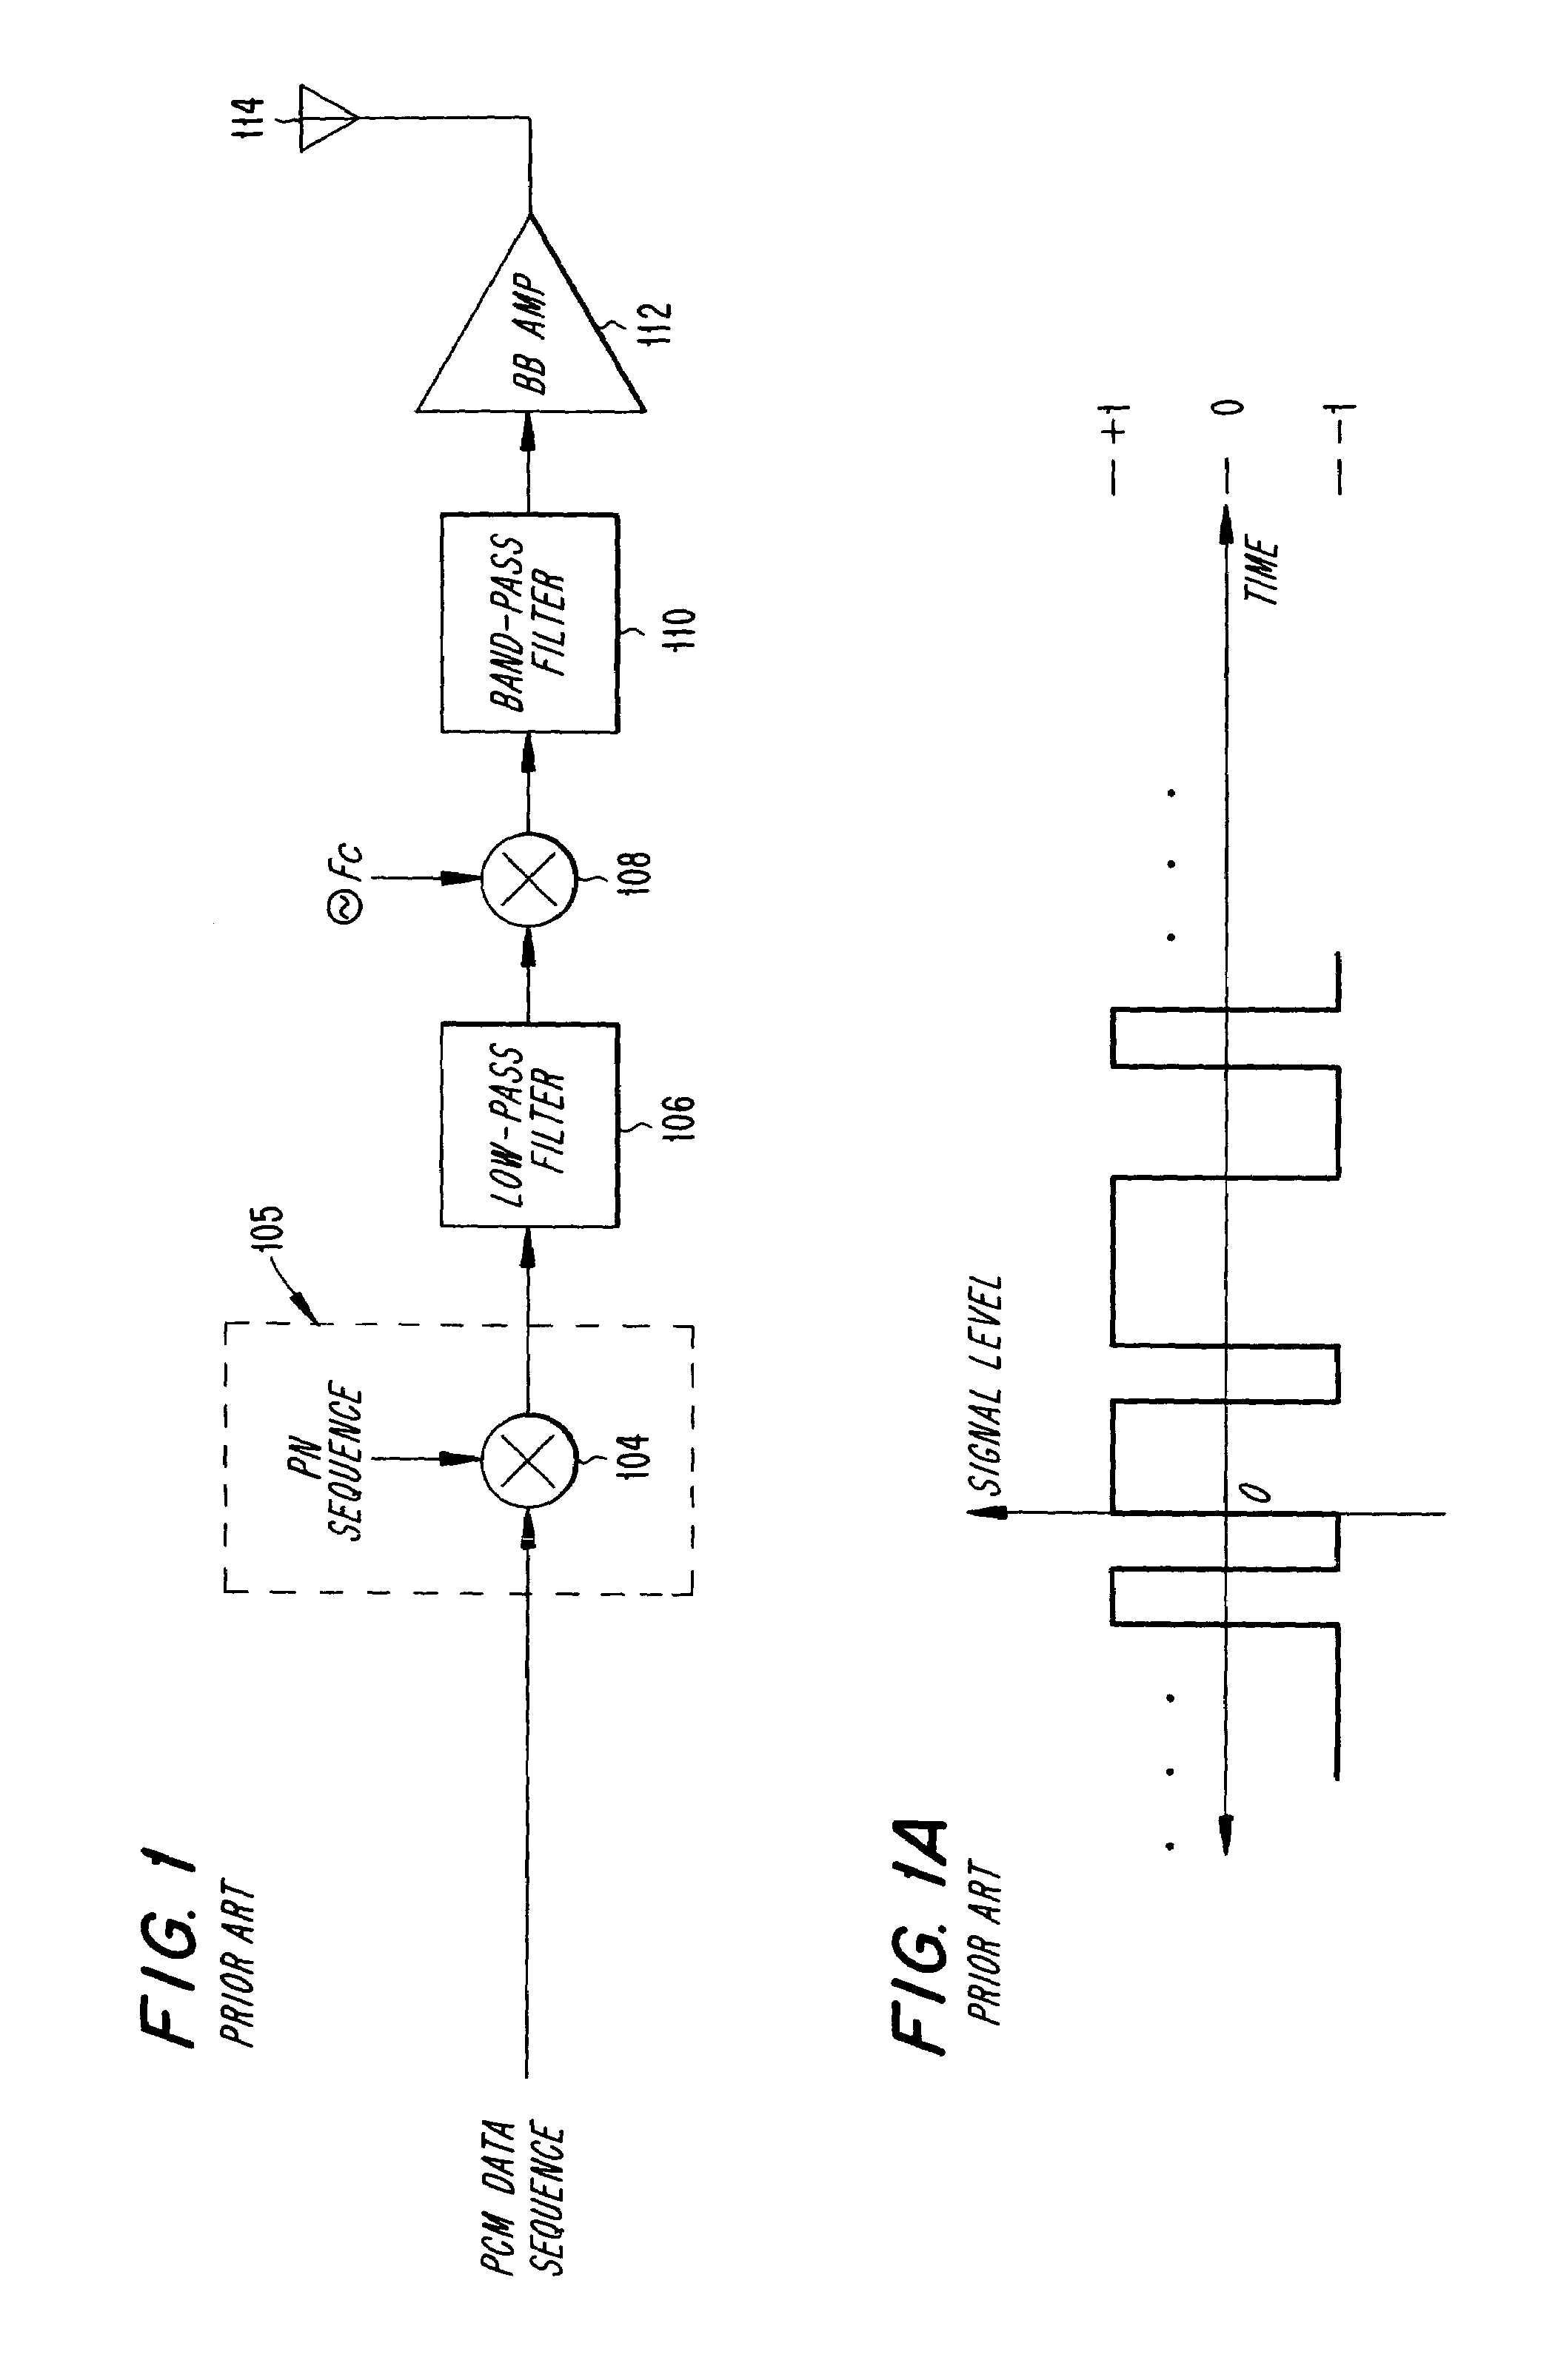 Patent Us7099373 Noise Shaping Technique For Spread Spectrum Available This Circuit Is Sometimesknown As A Quadrature Oscillator Drawing